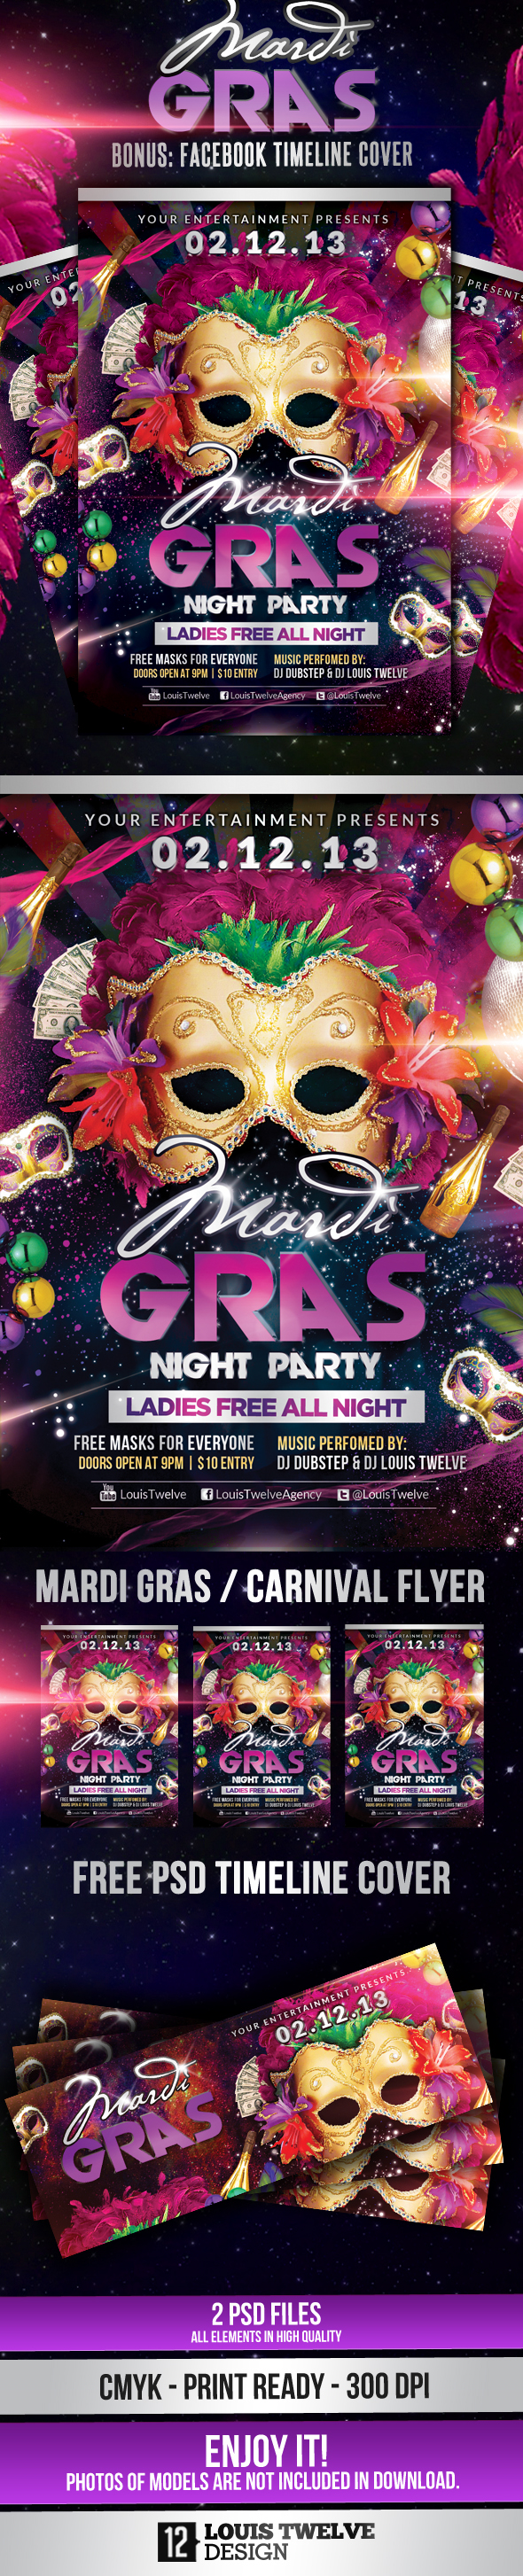 Pics Photos - Mardi Gras Carnival Party Flyer Fb Cover Clubs Parties